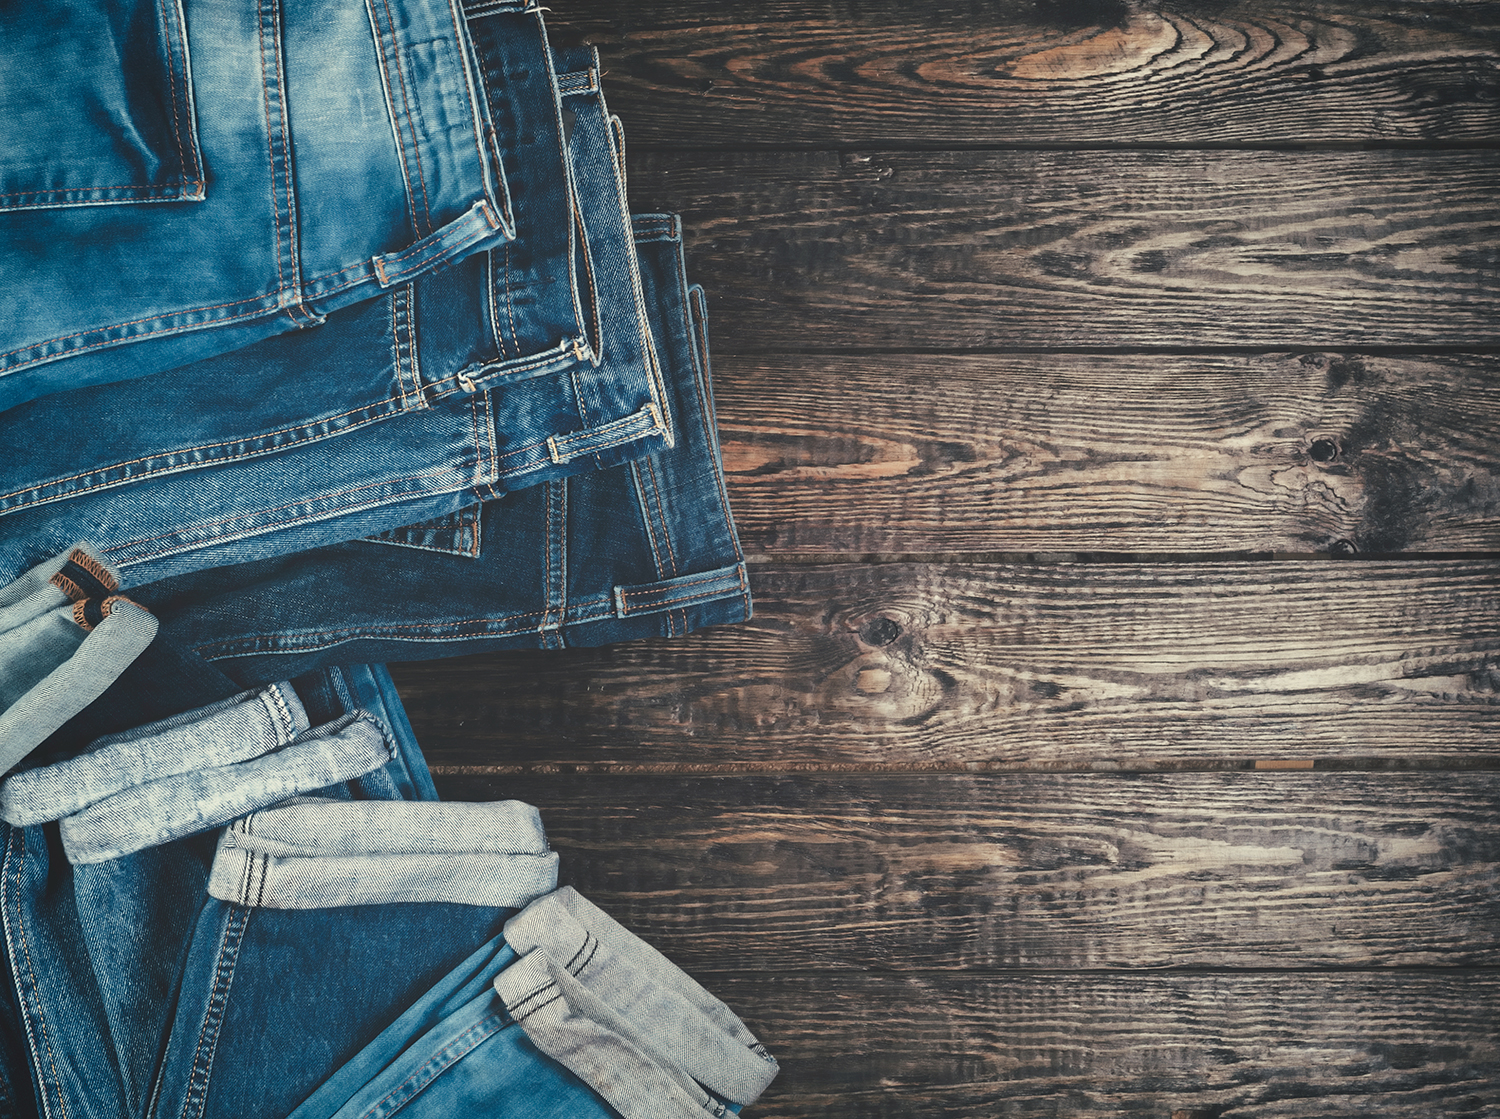 Levi Jeans on Wooden Background